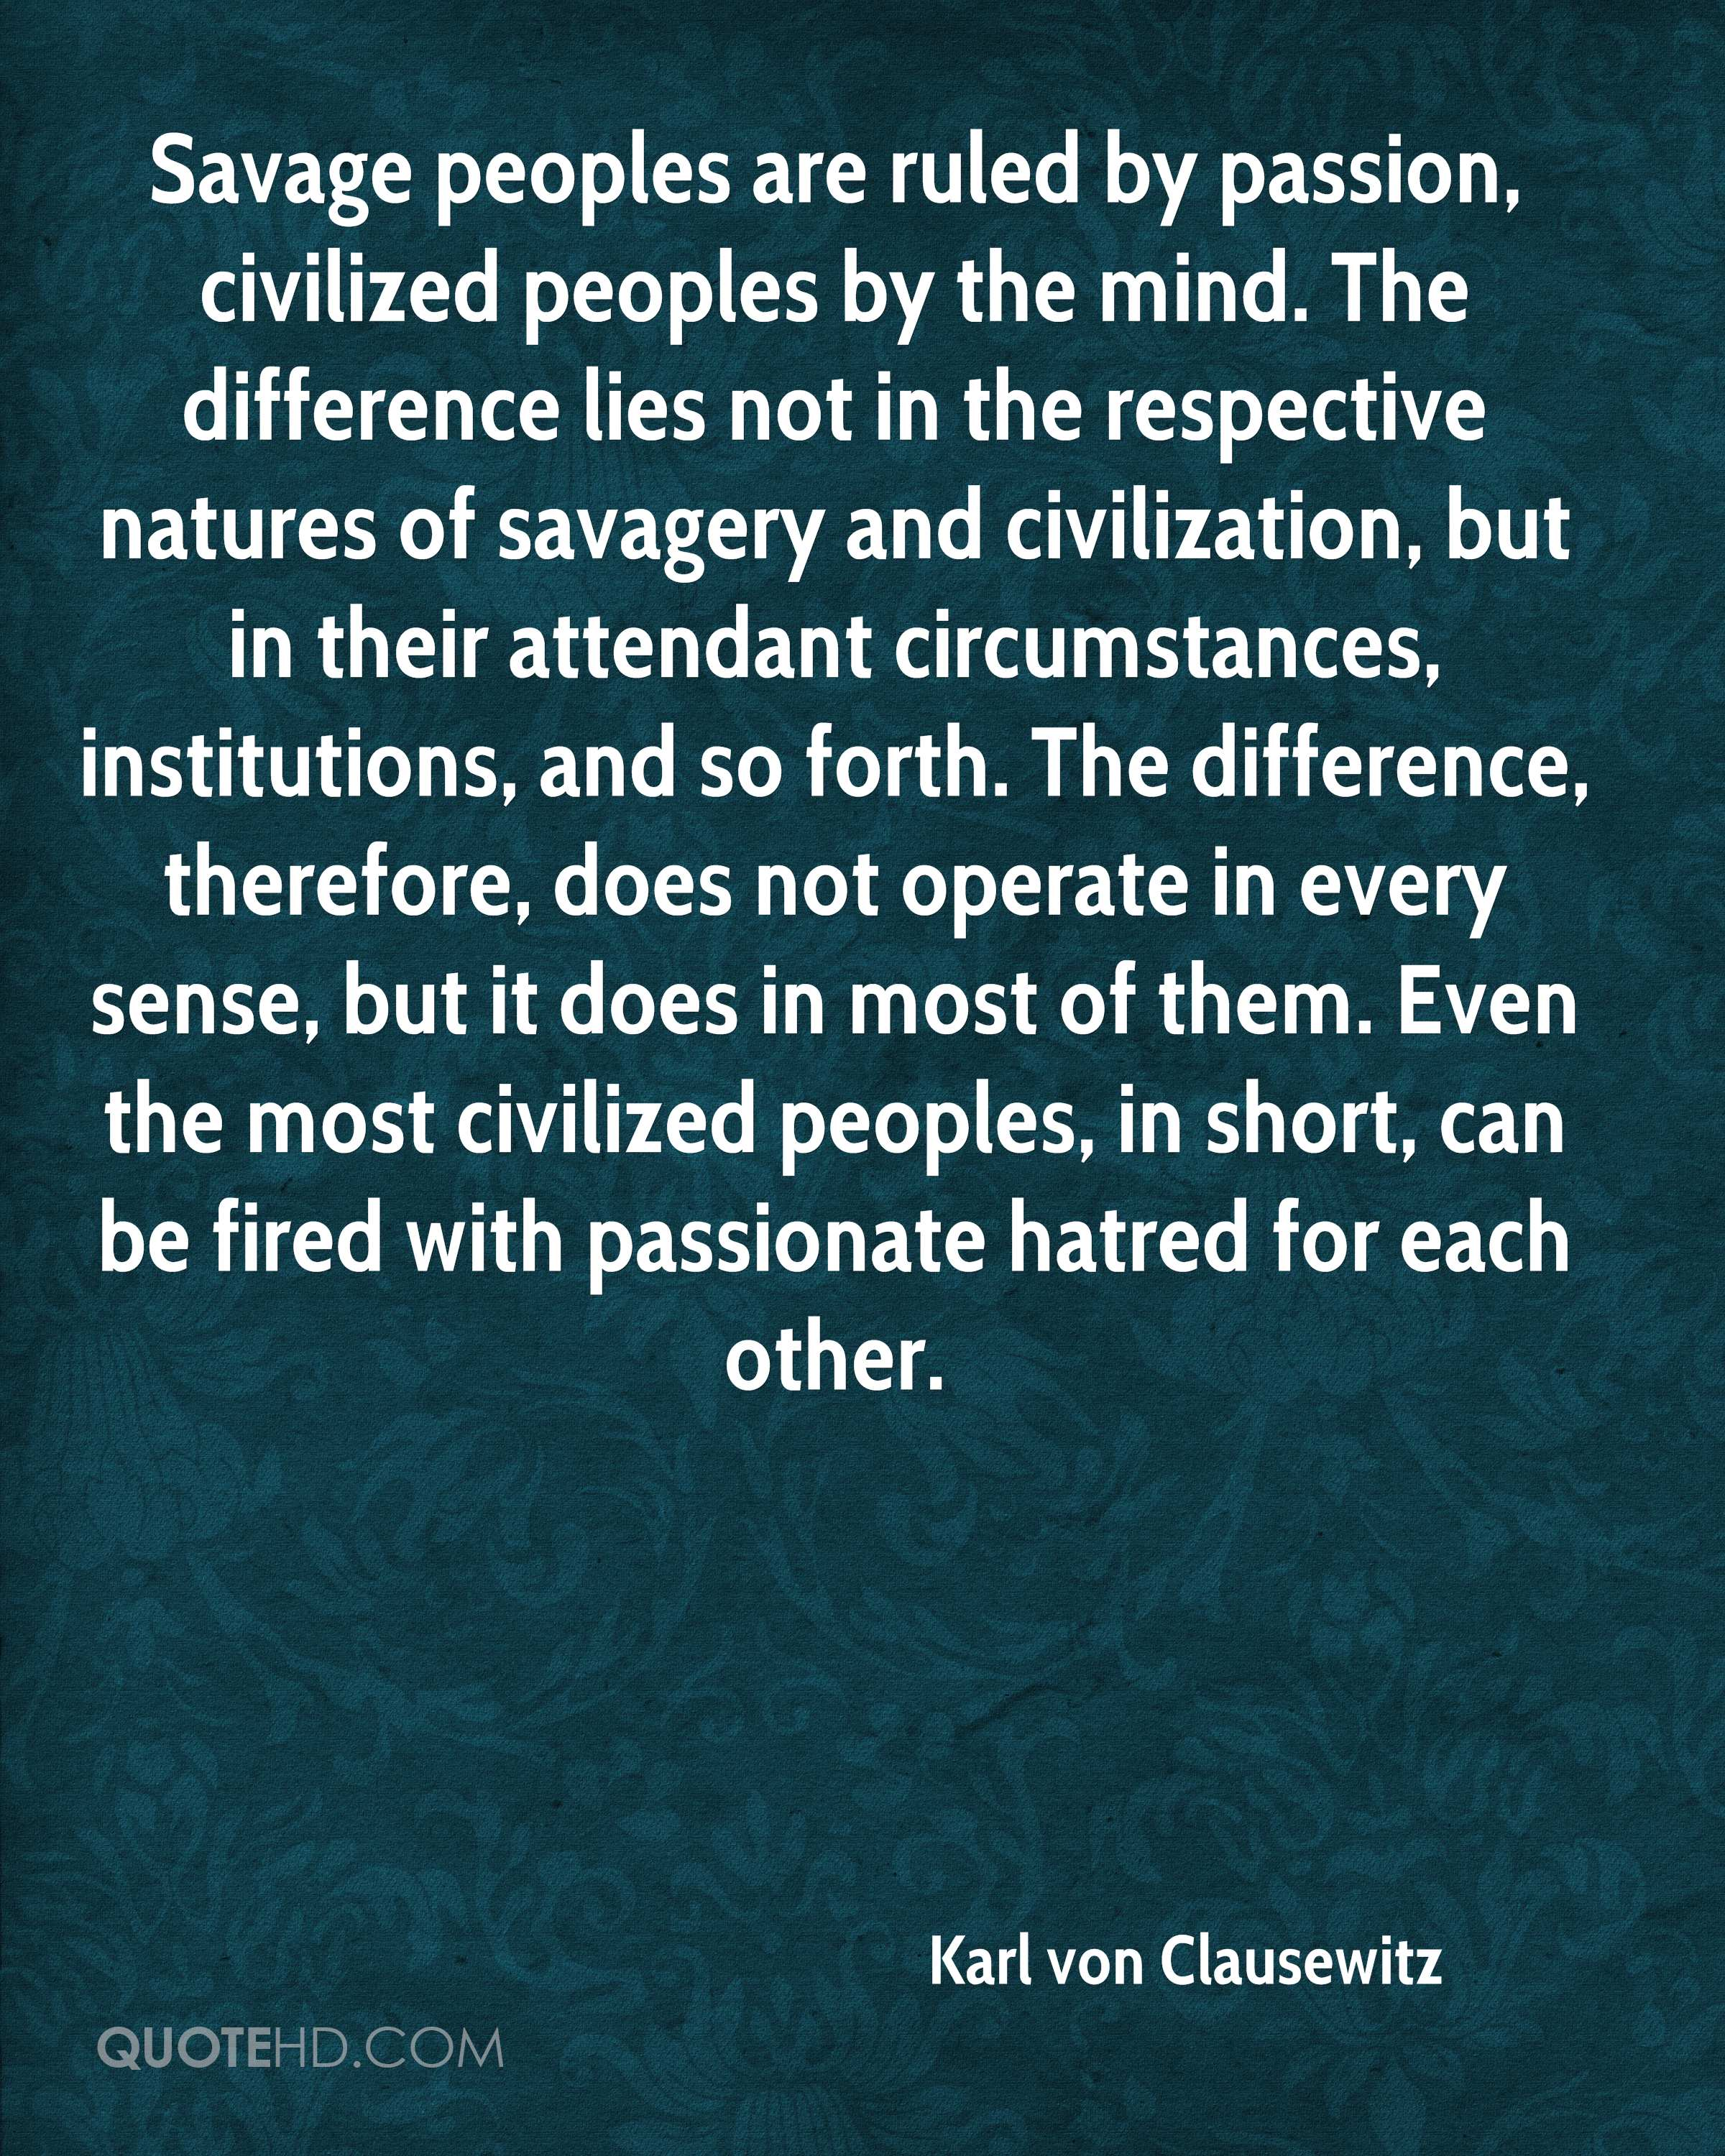 Savage peoples are ruled by passion, civilized peoples by the mind. The difference lies not in the respective natures of savagery and civilization, but in their attendant circumstances, institutions, and so forth. The difference, therefore, does not operate in every sense, but it does in most of them. Even the most civilized peoples, in short, can be fired with passionate hatred for each other.